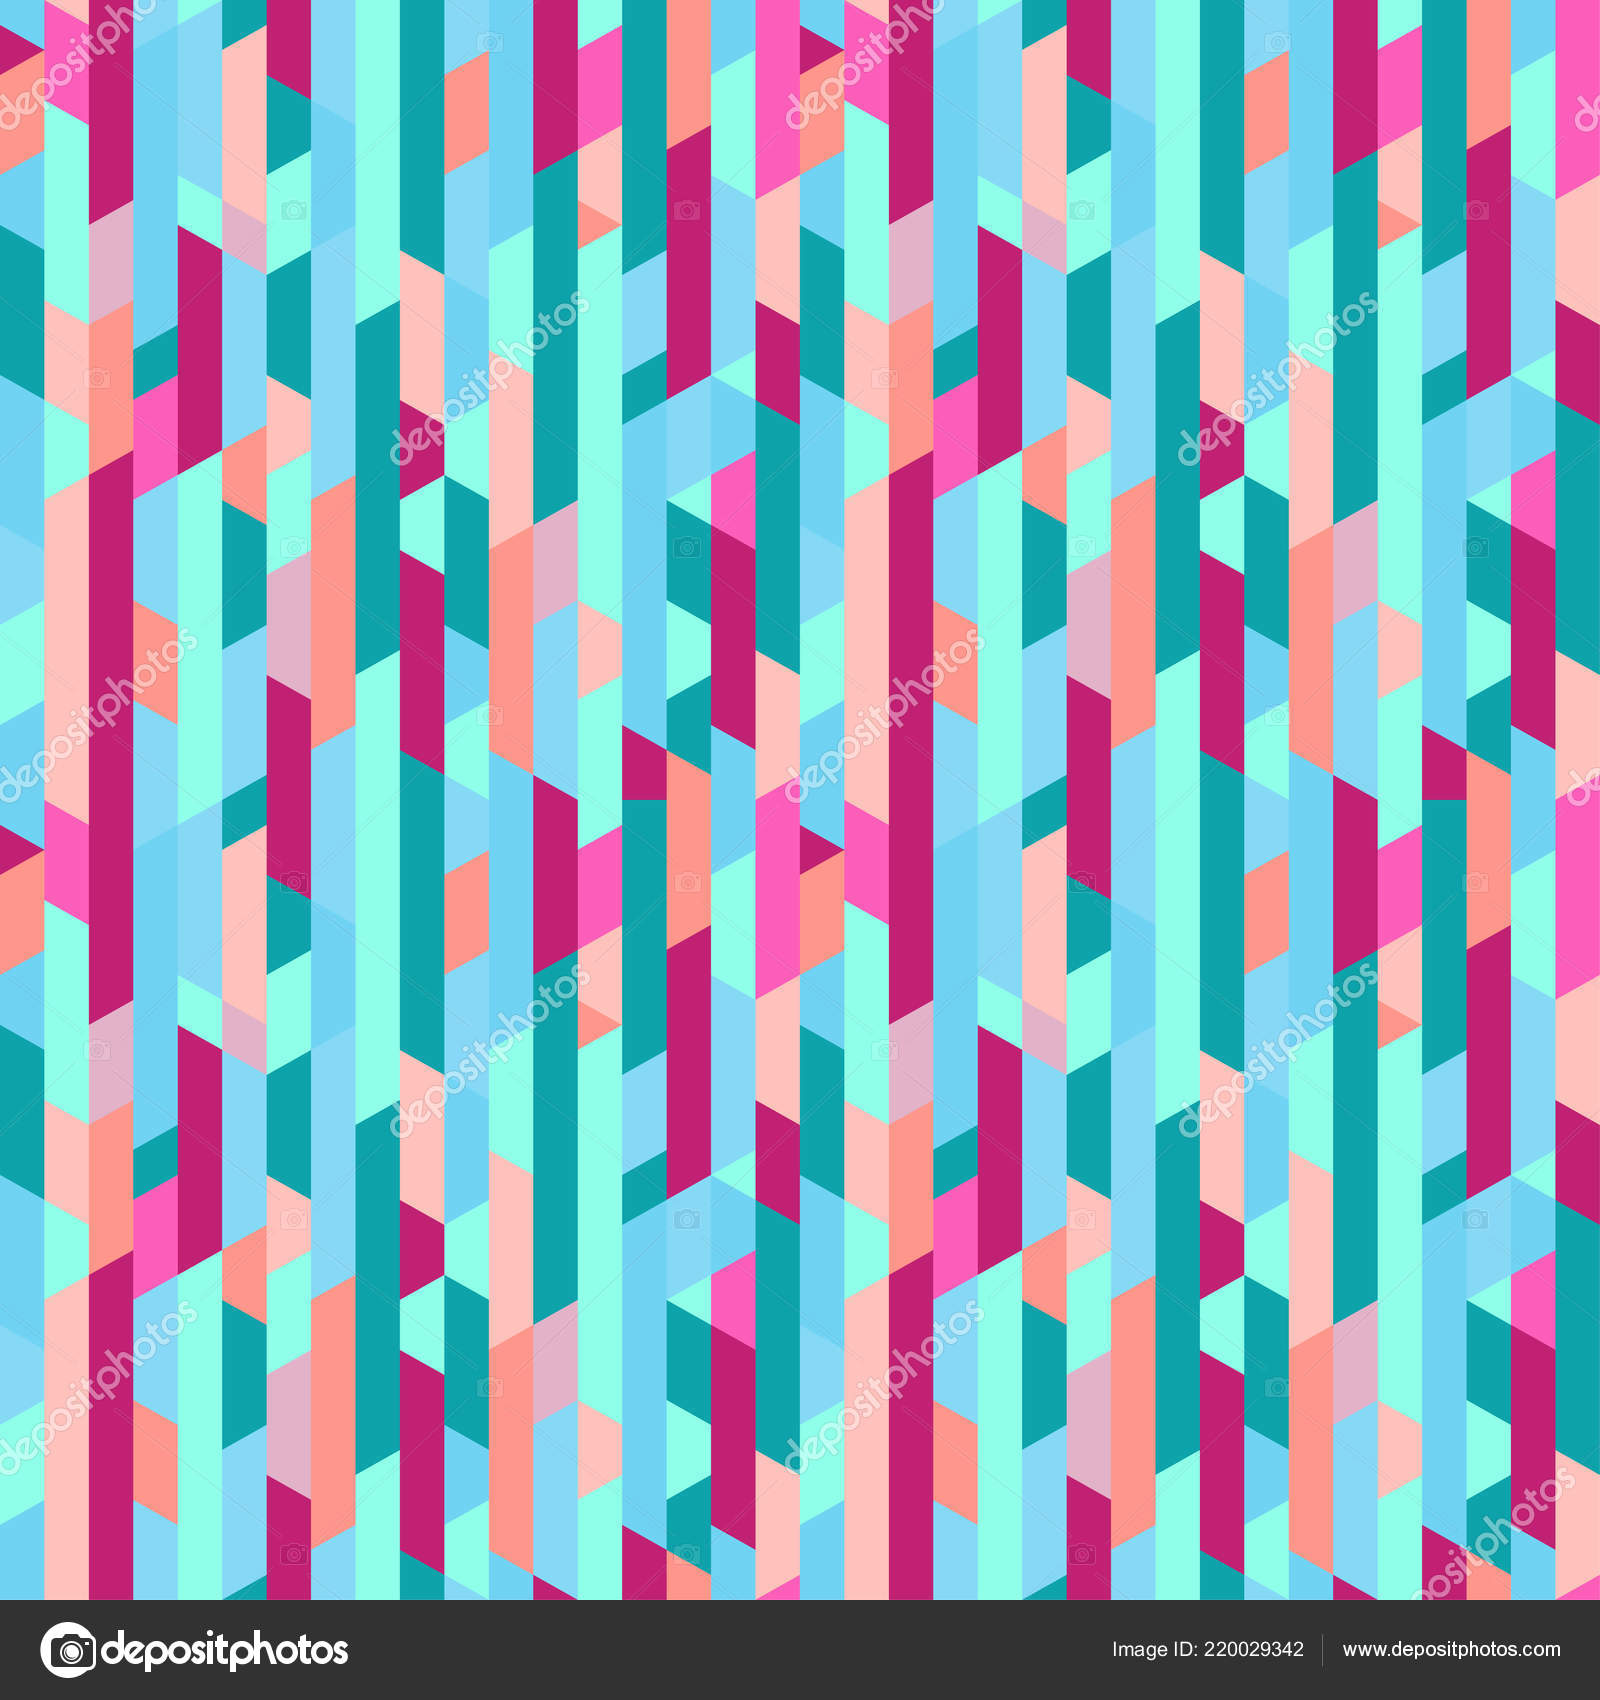 Polygonal Pattern Abstract Geometric Wallpaper Surface Striped